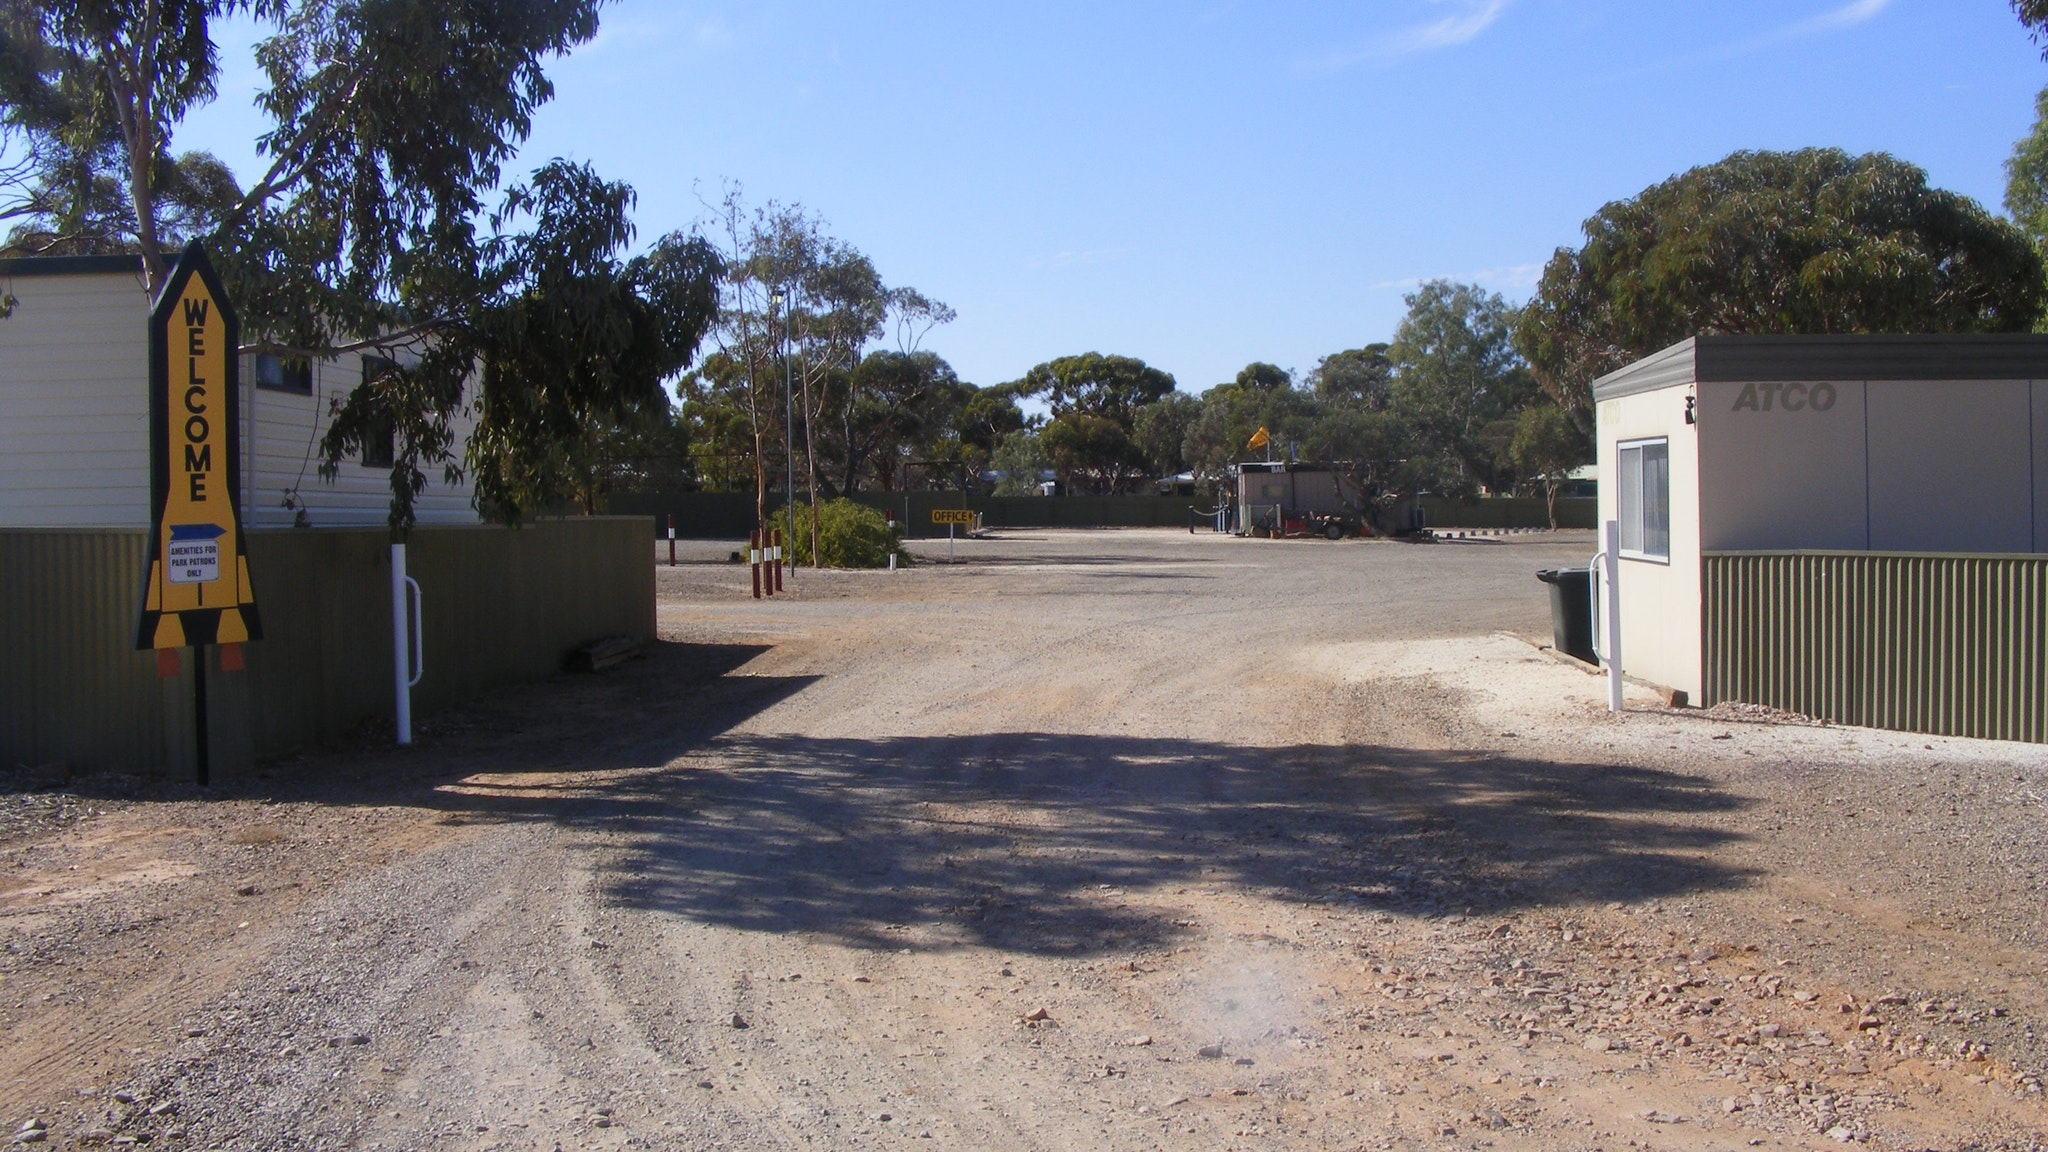 Woomera Traveller's Village and Caravan Park - Accommodation Mount Tamborine